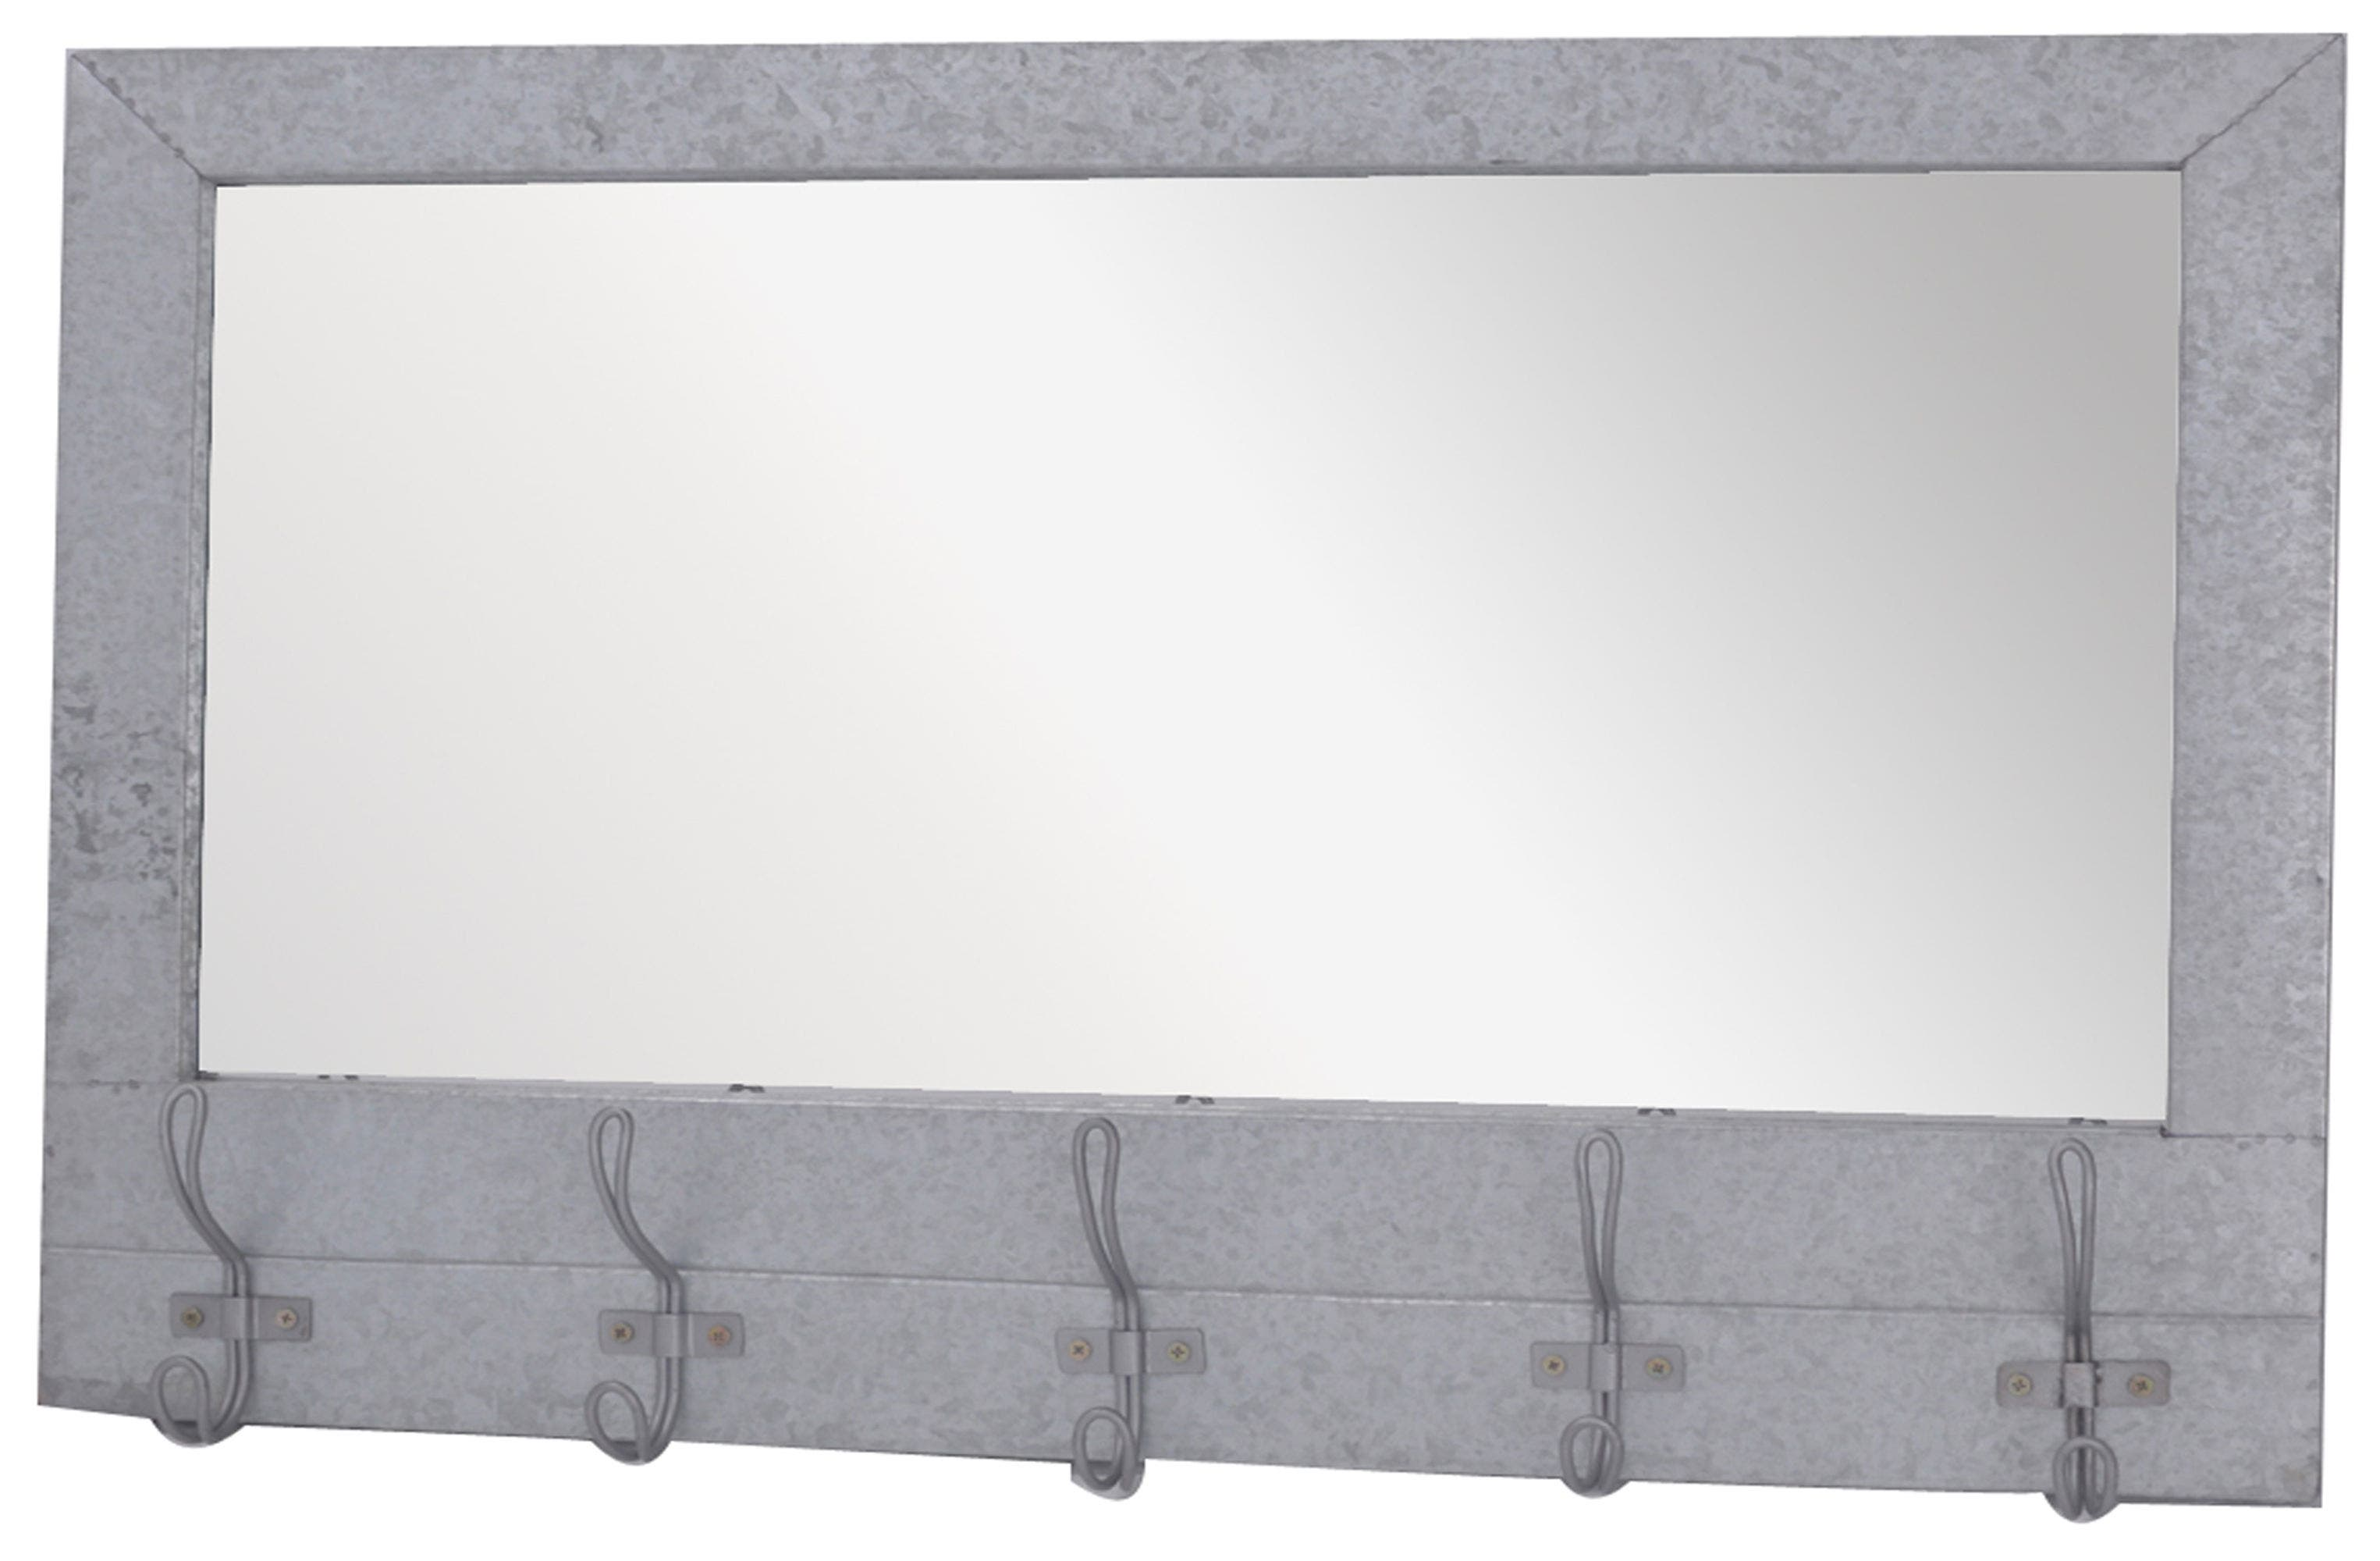 Metal Wall Mirror with Hooks,                             Main thumbnail 1, color,                             040